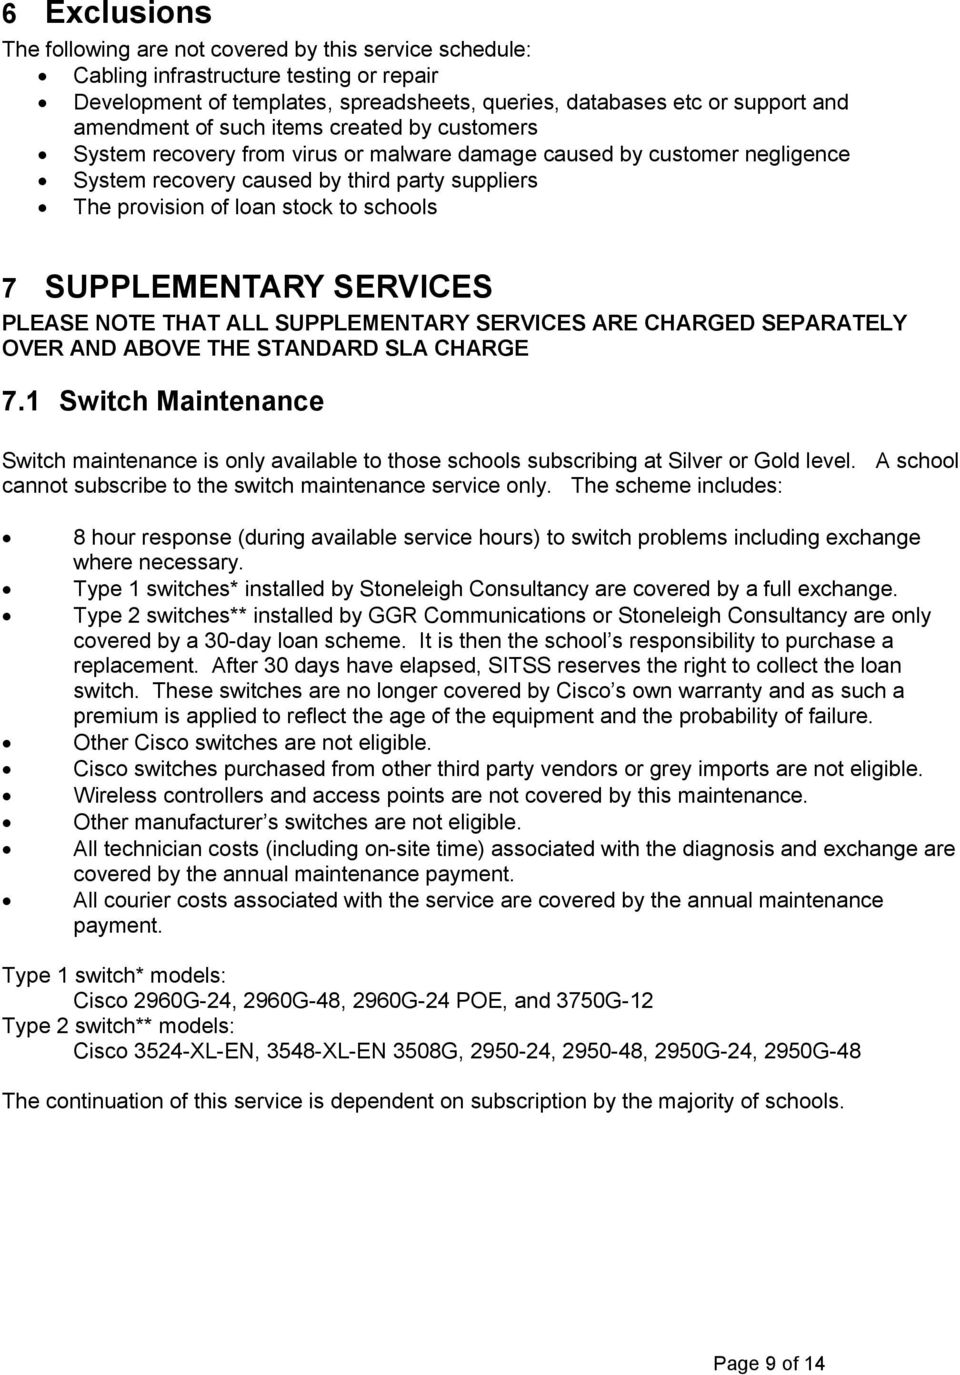 SUPPLEMENTARY SERVICES PLEASE NOTE THAT ALL SUPPLEMENTARY SERVICES ARE CHARED SEPARATELY OVER AND ABOVE THE STANDARD SLA CHARE 7.